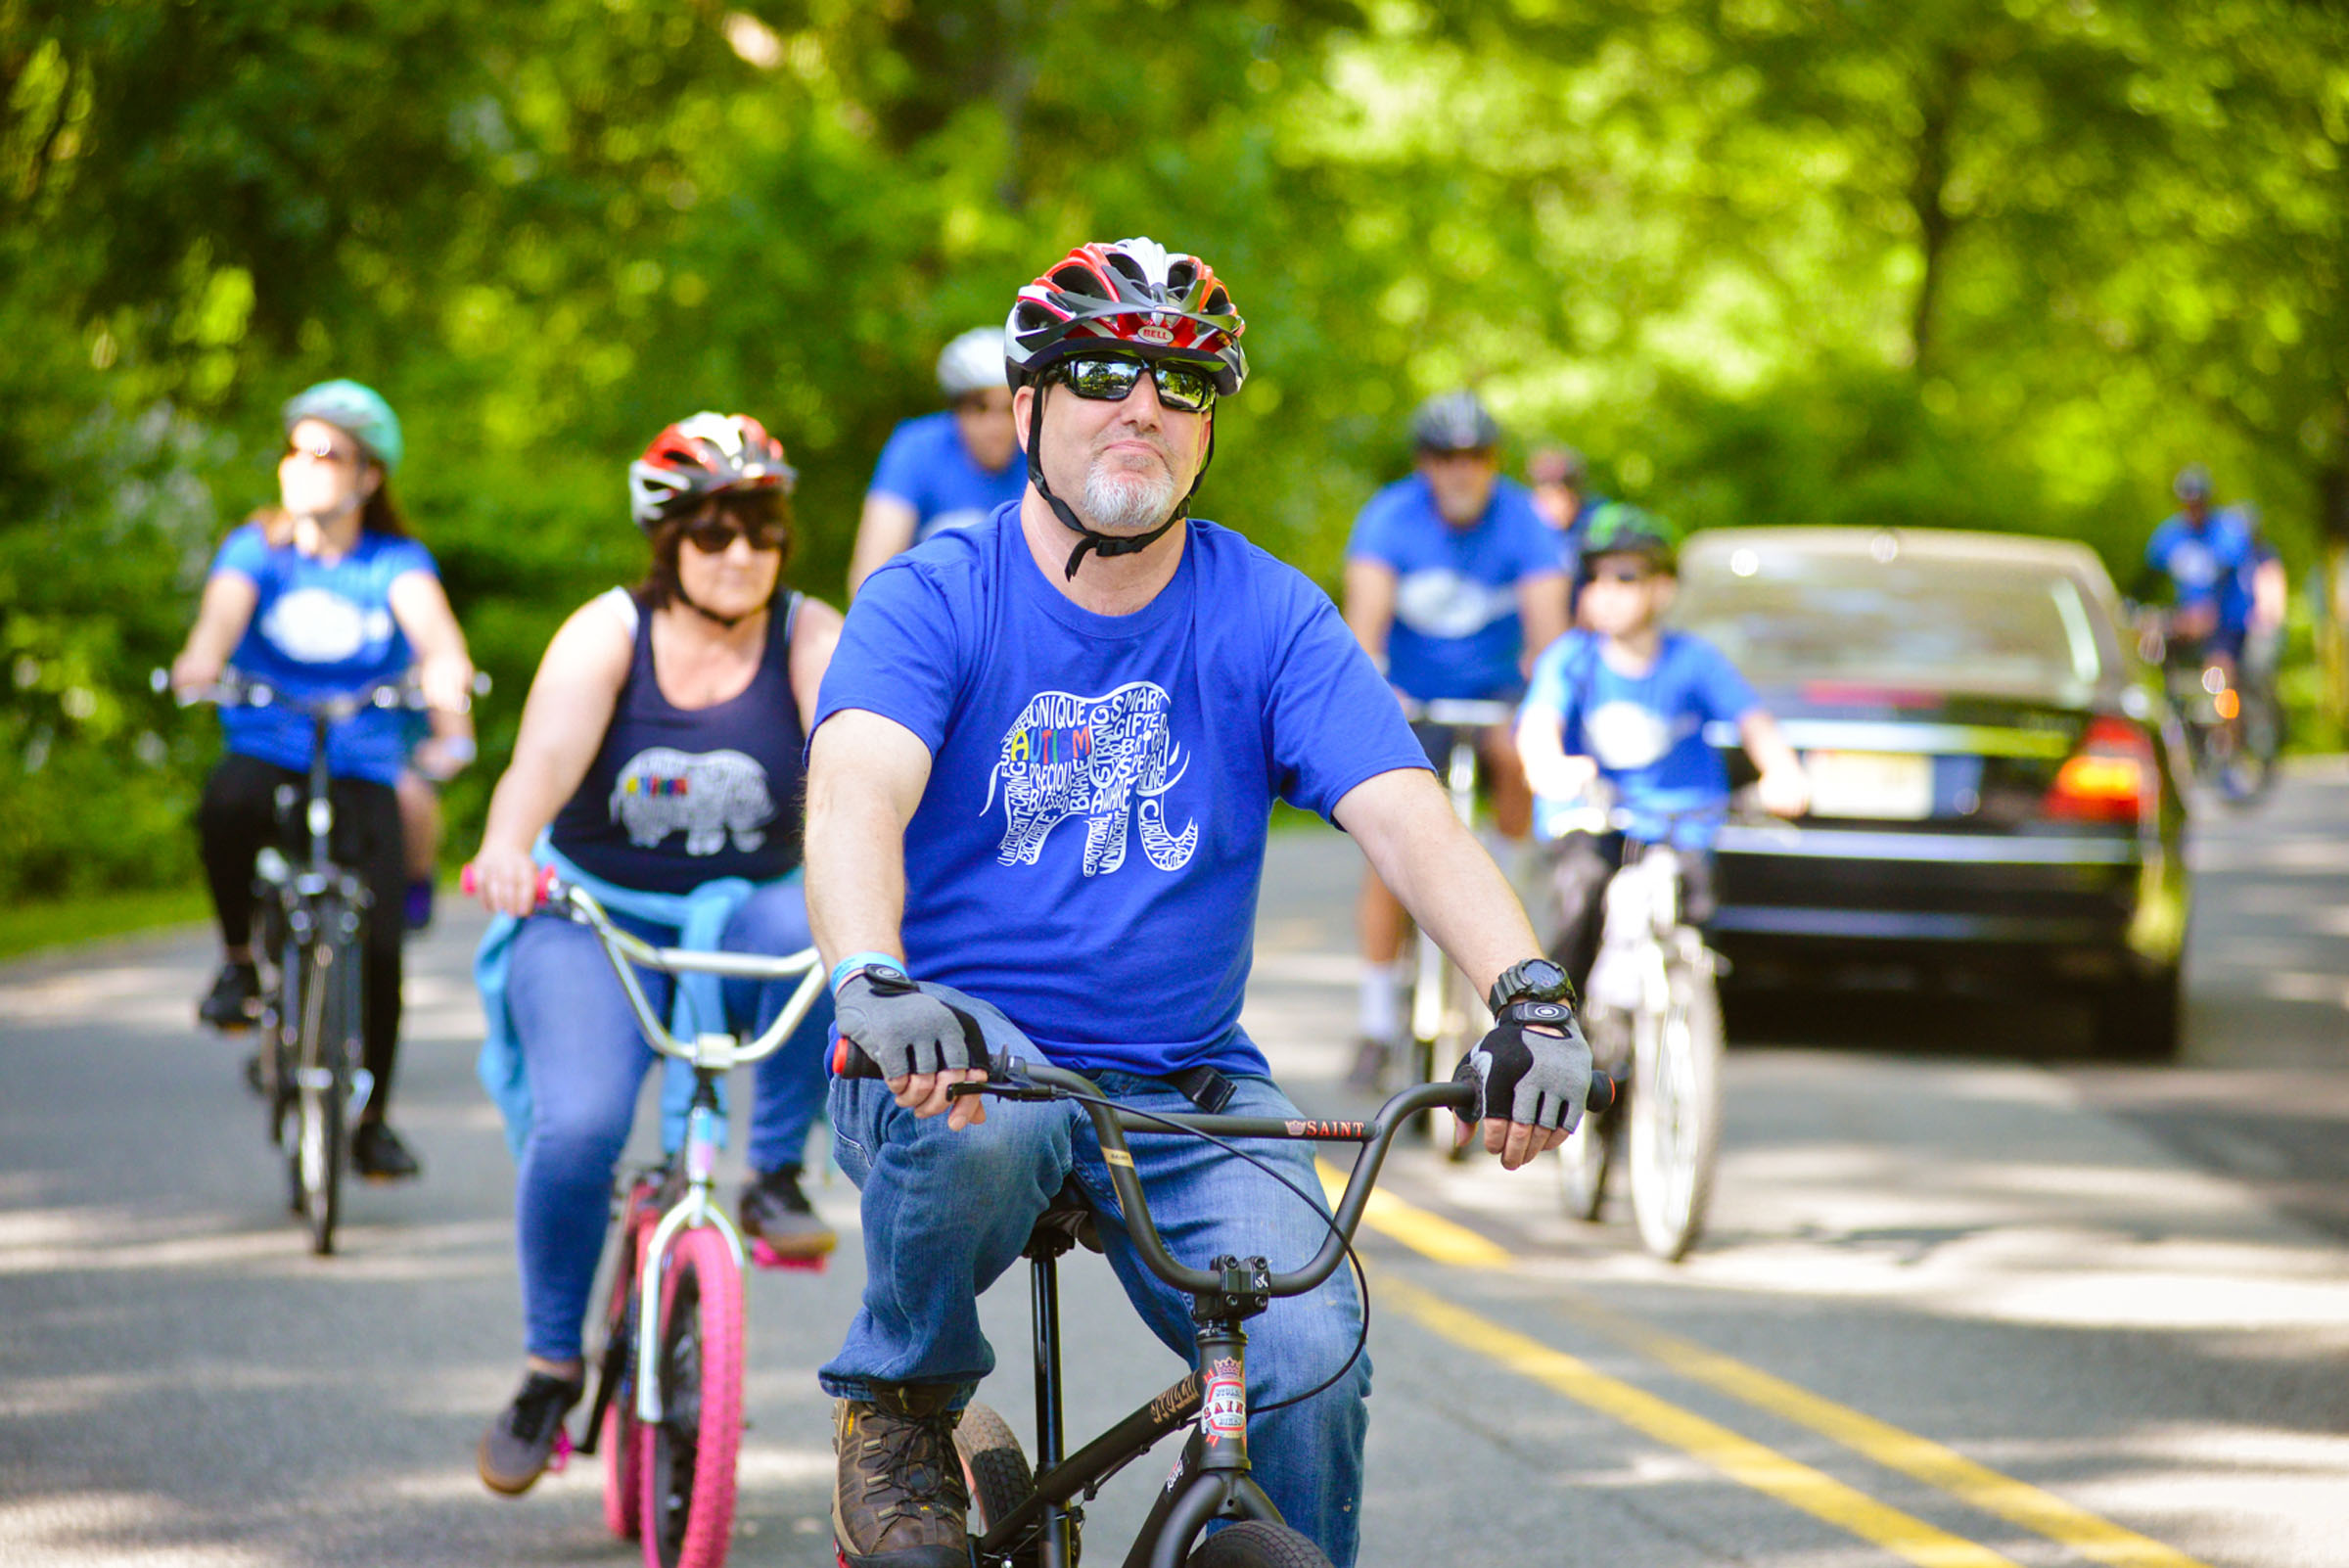 2017-06-04 GTD4A Charity Bike Ride - BCC - Paramus NJ-1983.jpg